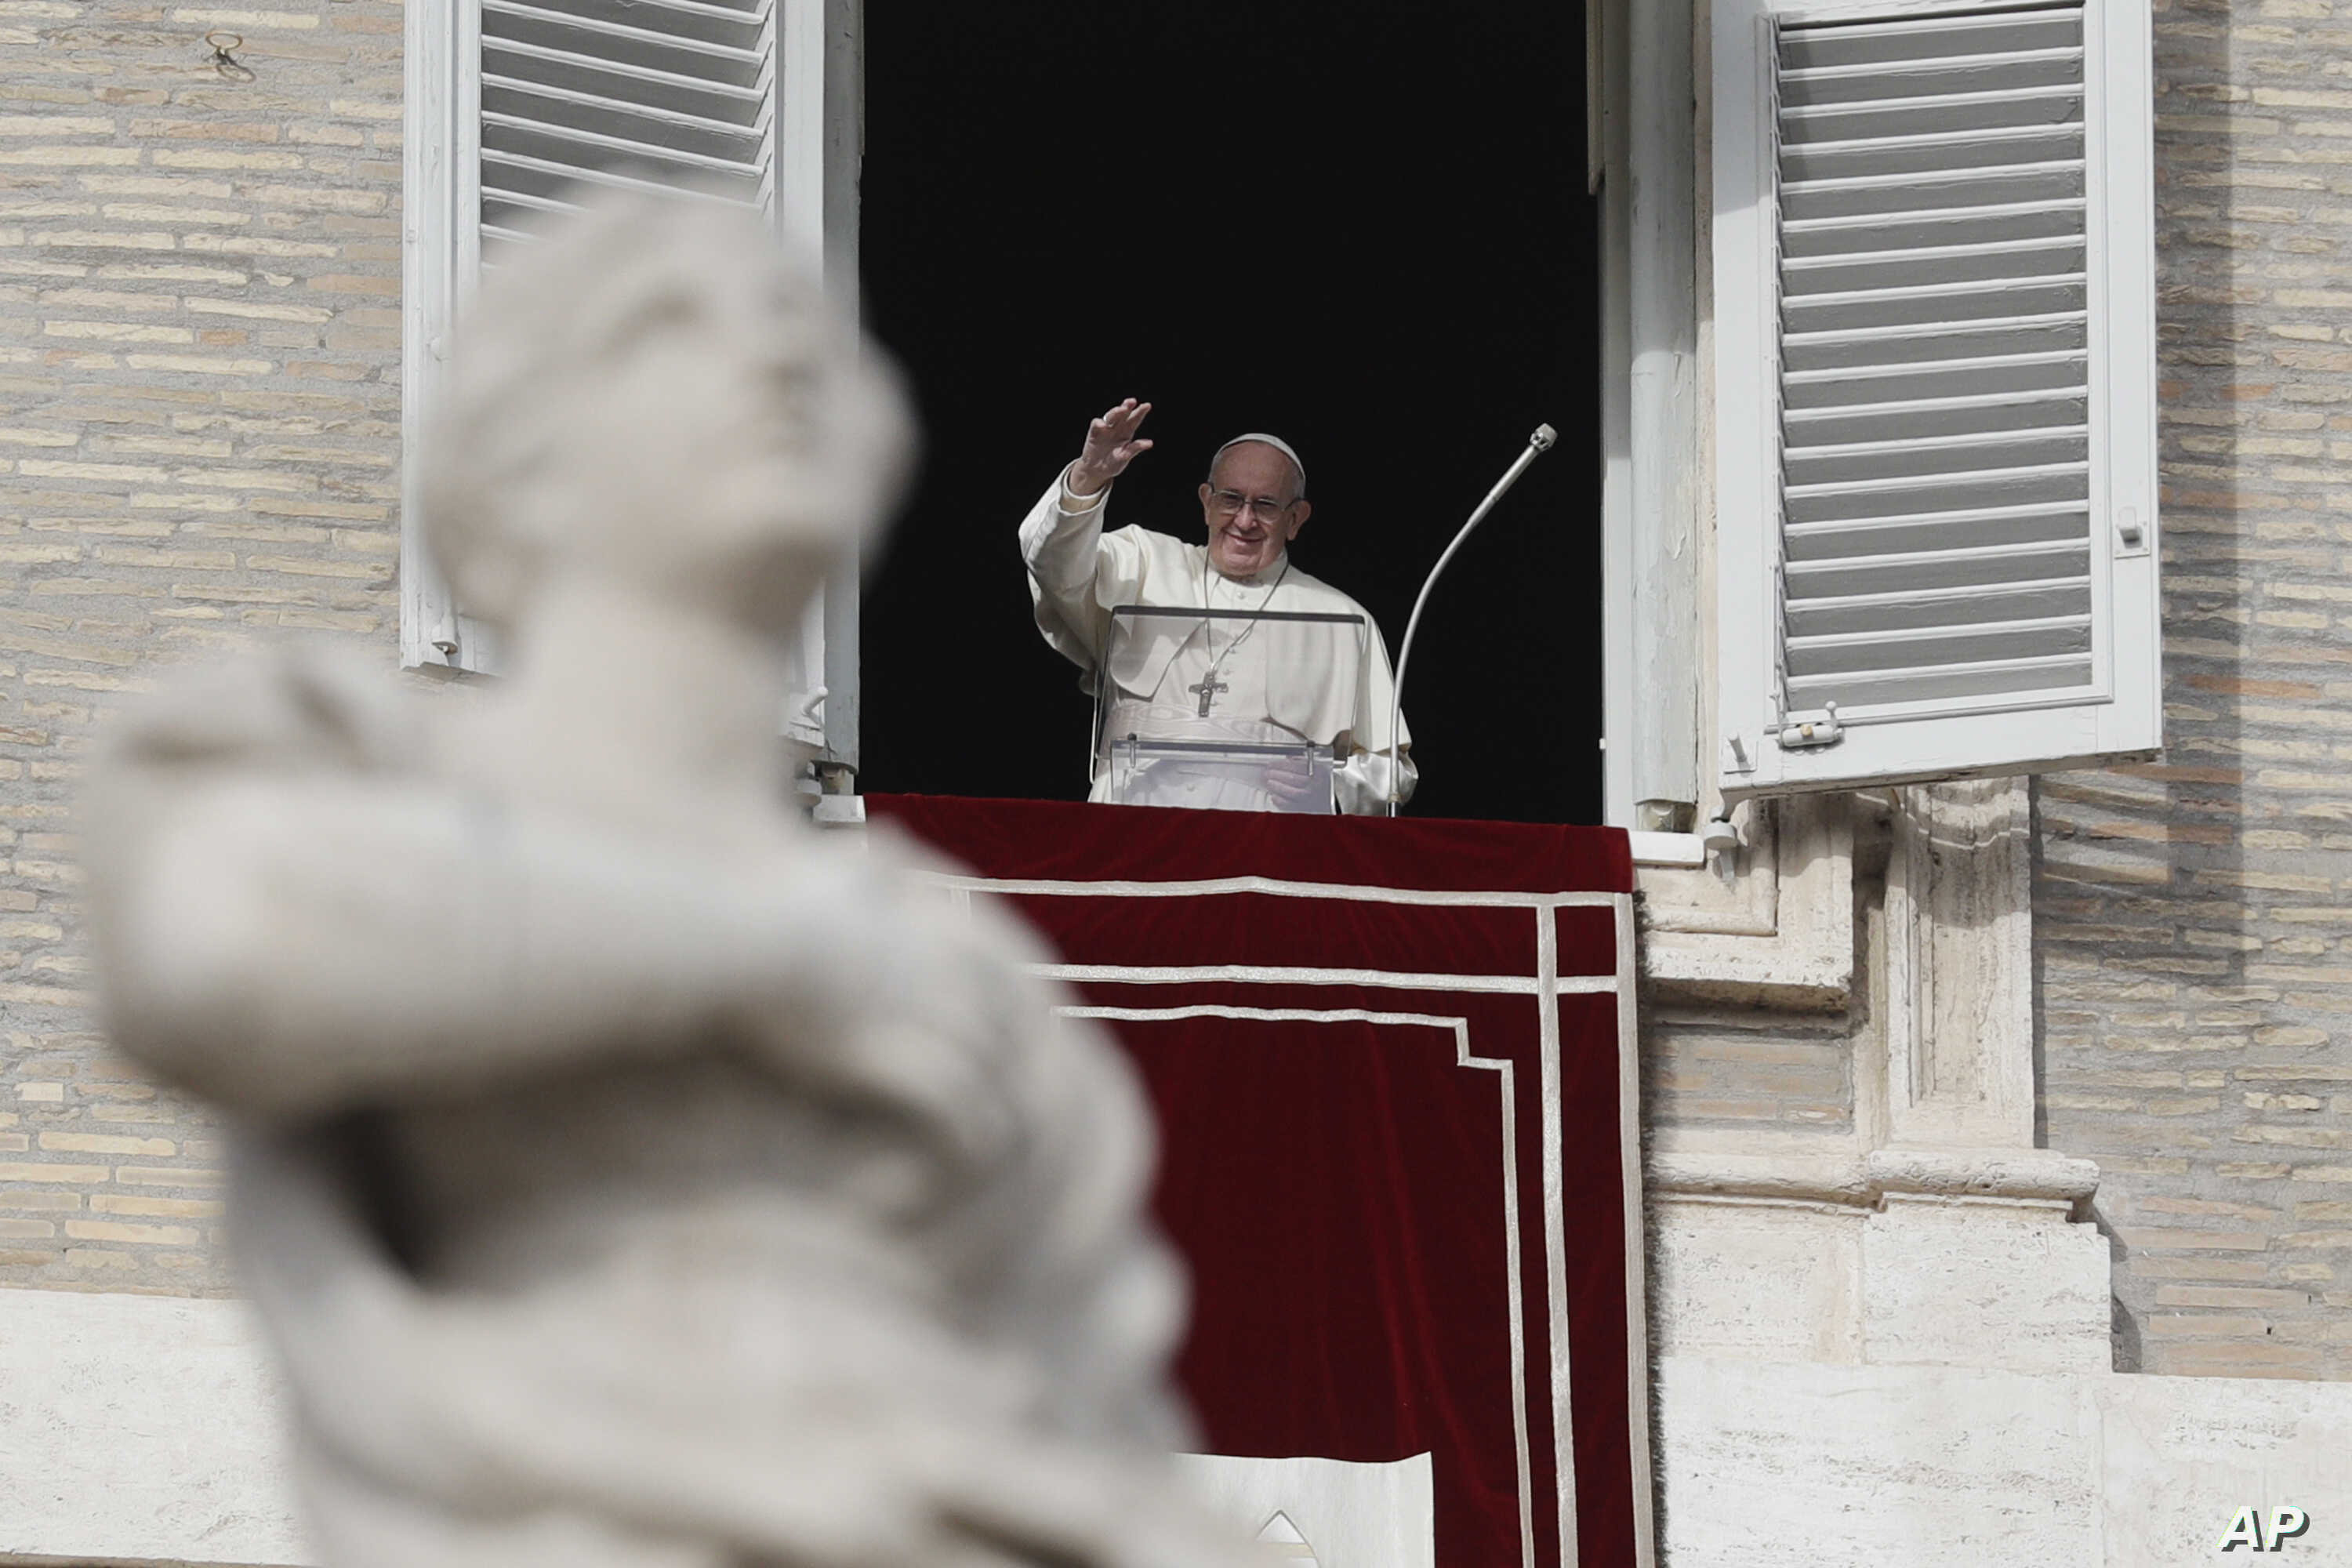 Vatican Committee: Church Credibility at Risk Over Sex Abuse | Voice